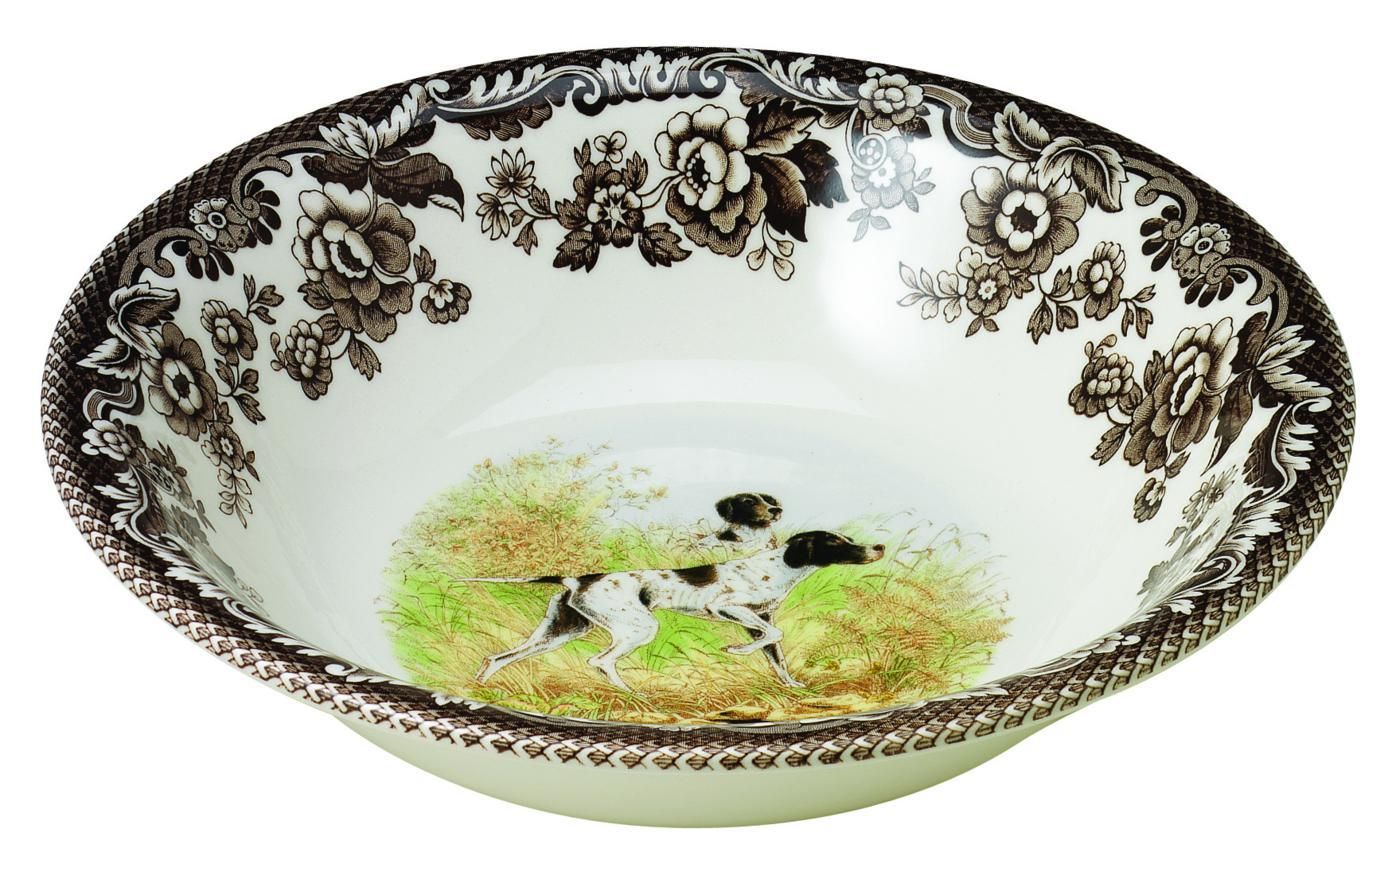 Spode Woodland Ascot Cereal Bowl 8 Inch (Flat Coated Pointer) image number 0